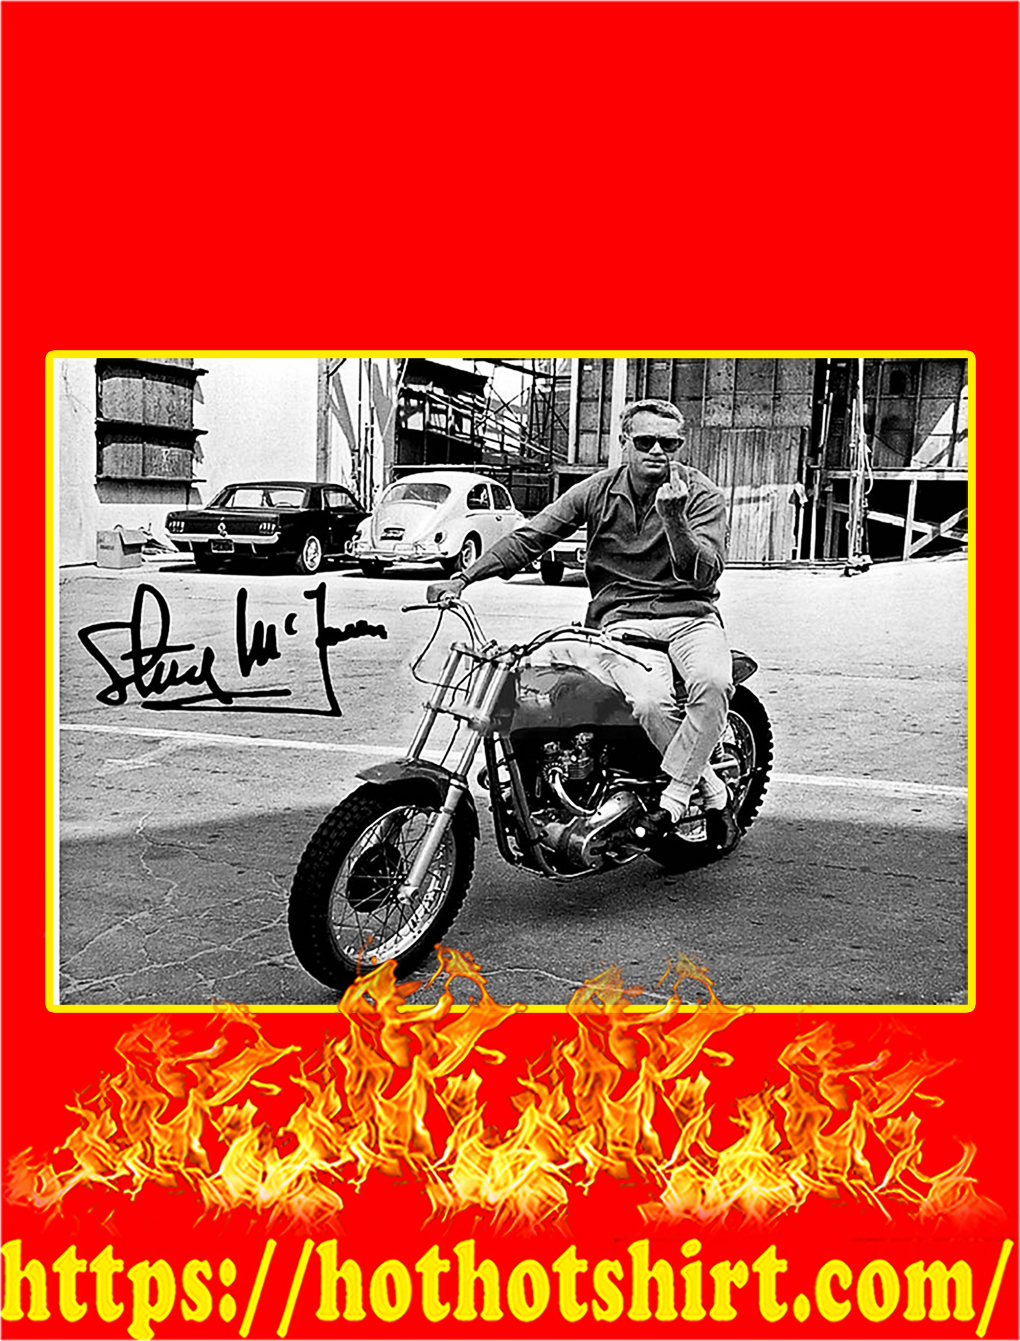 Steve McQueen One Finger Salute Signature Poster - A2